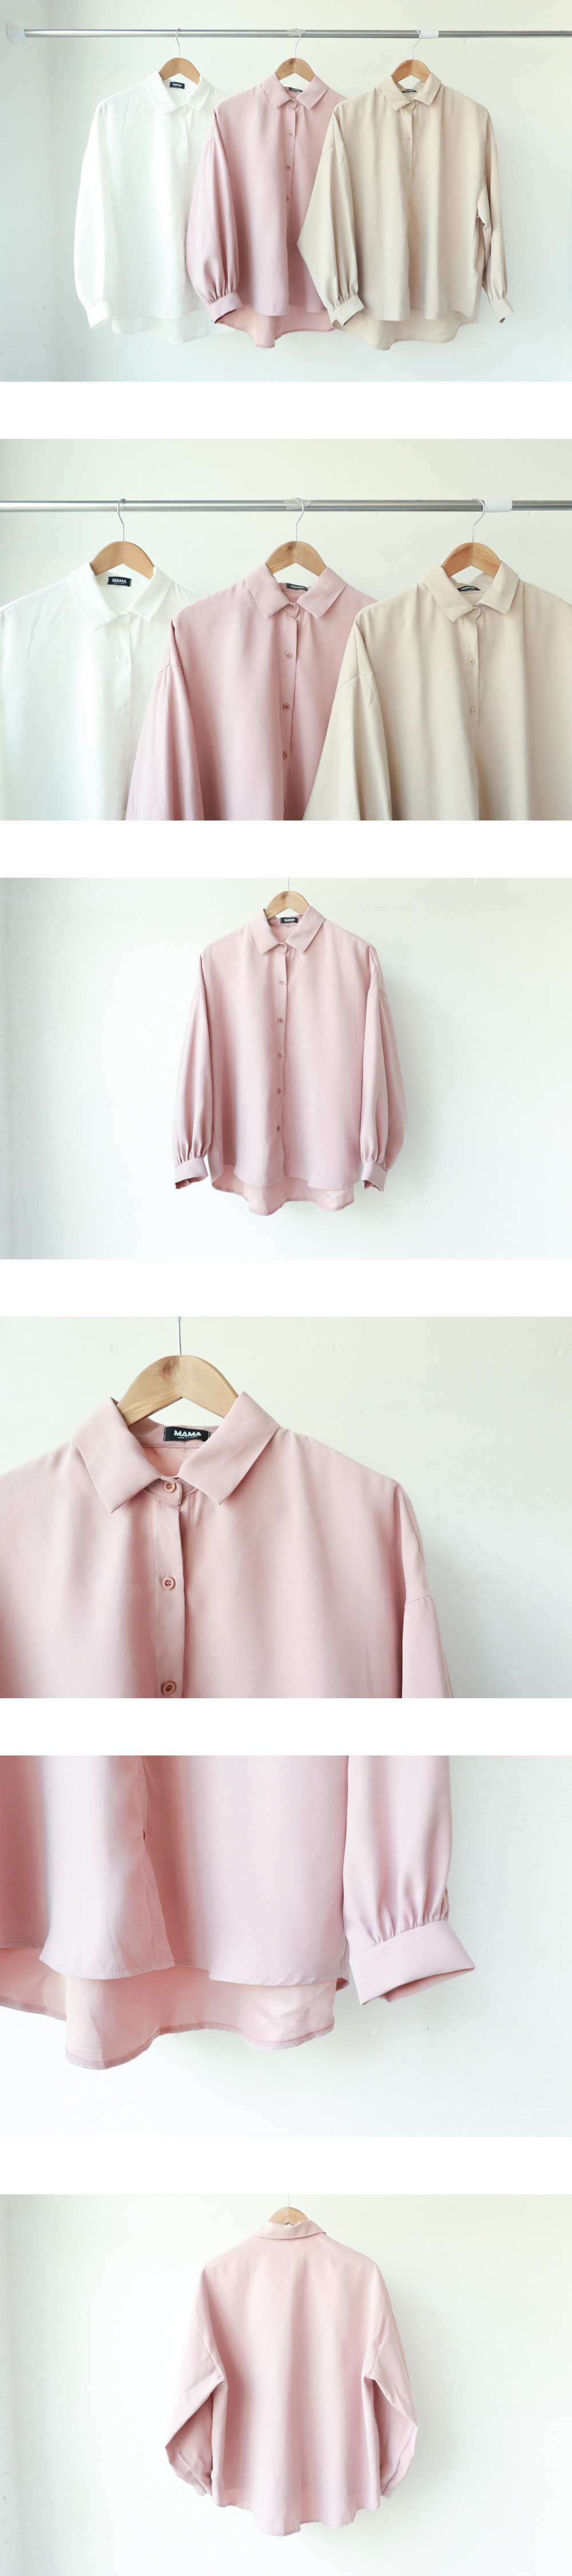 Peach Puff Southern Shirt